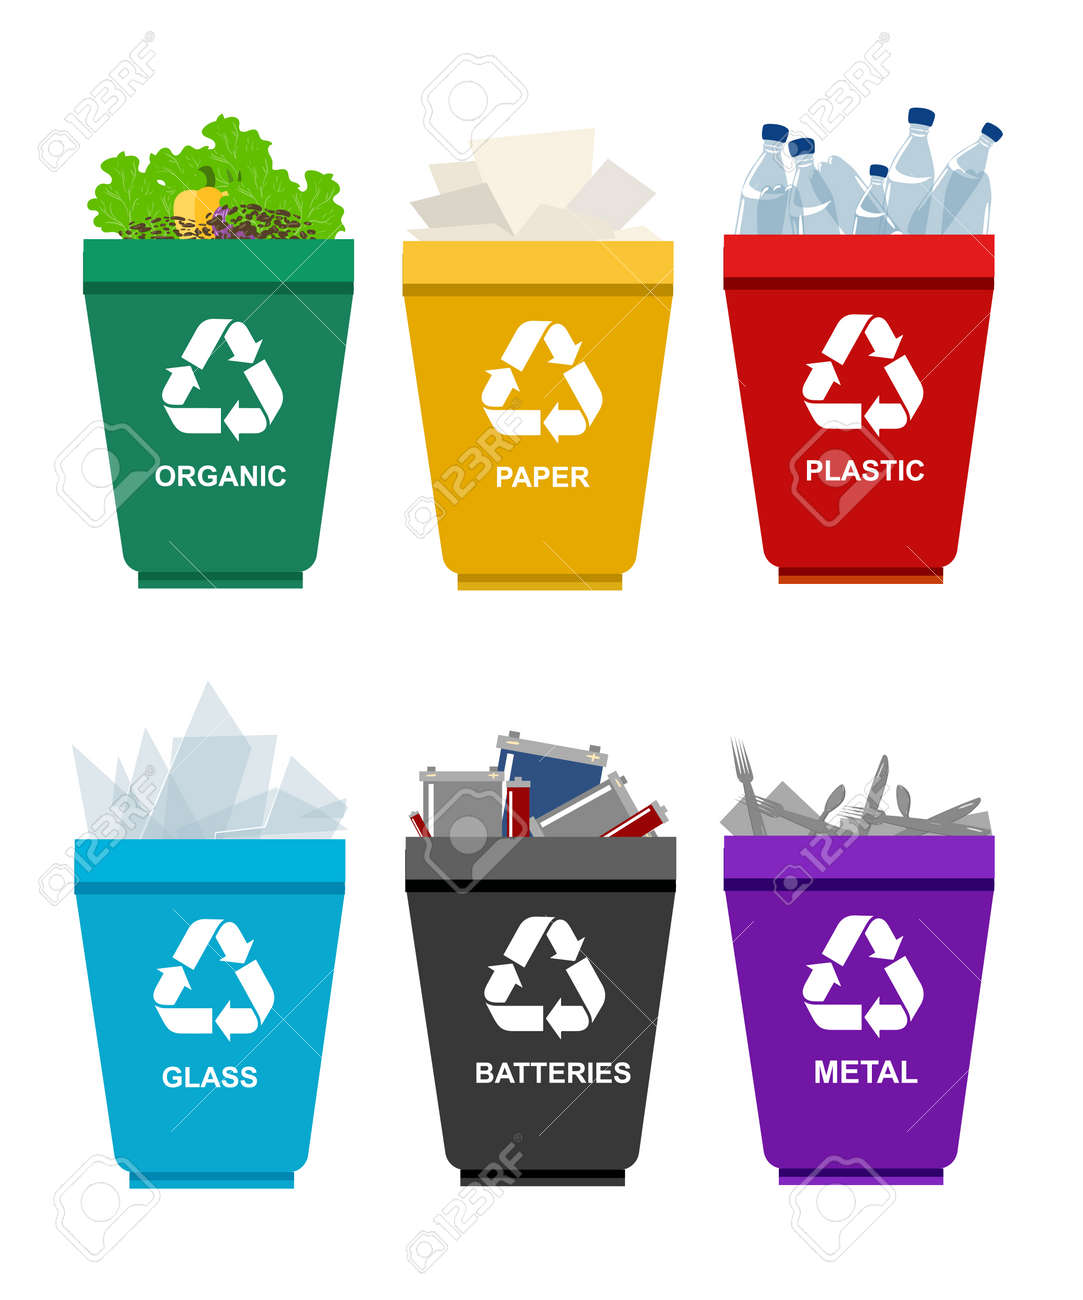 Morris County's Solid Waste and Recycling Resource